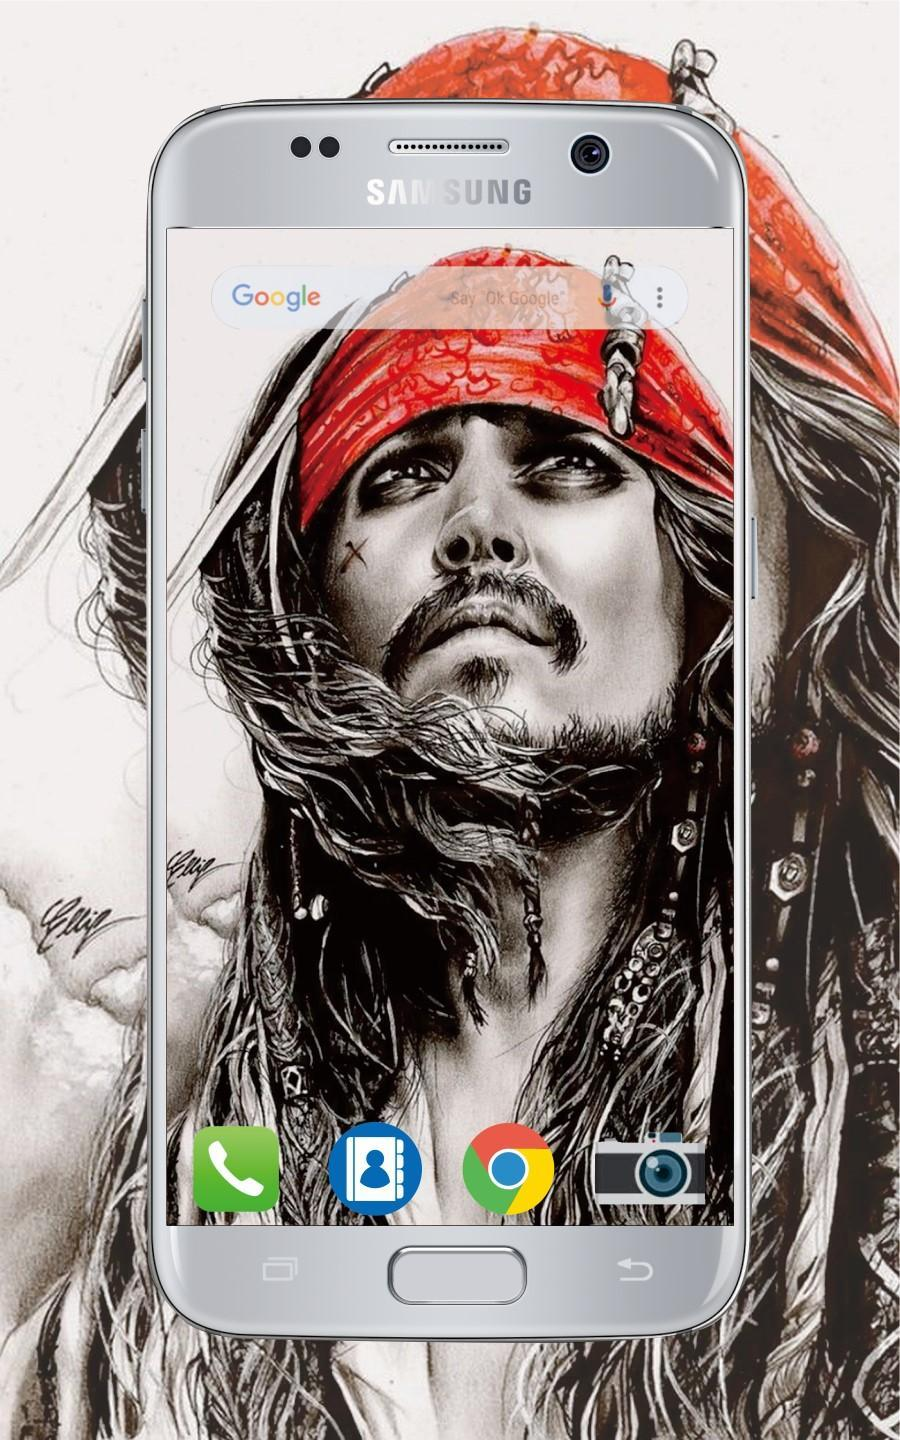 Best Jack Sparrow Wallpapers For Android Apk Download